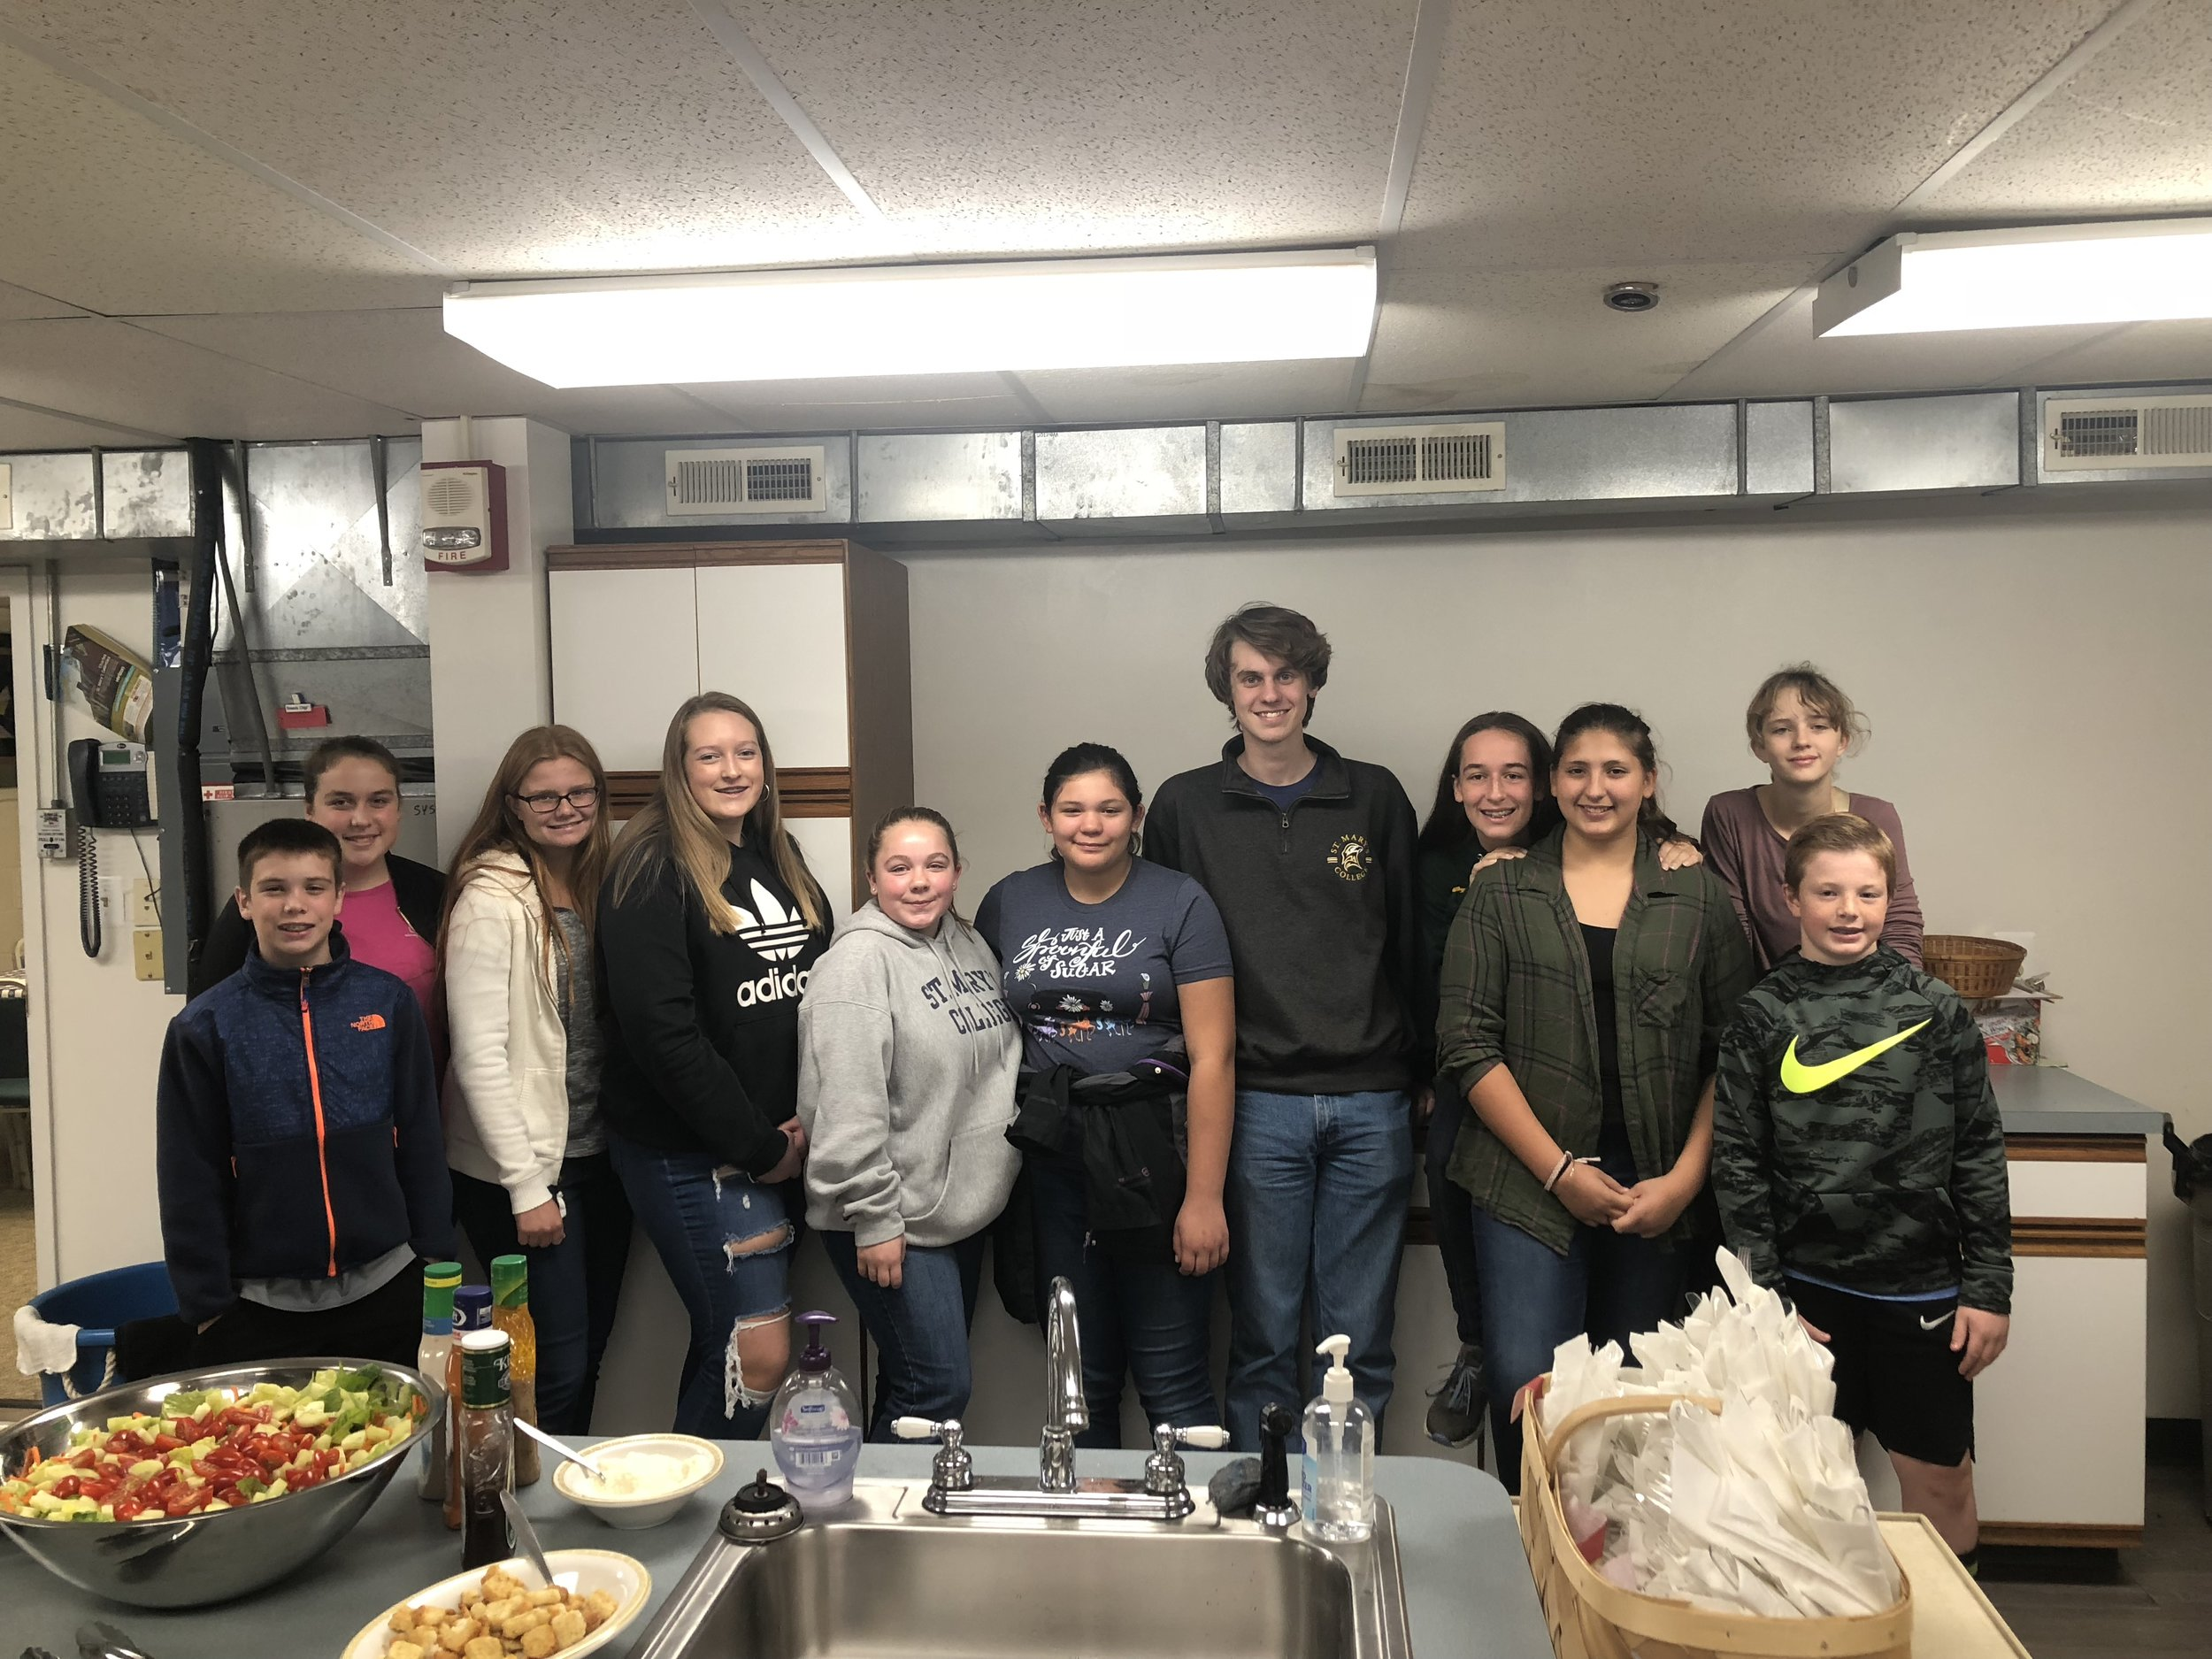 Youth sponsored W.A.R.M. (Wrapping arms 'round many) evening November 11, 2018